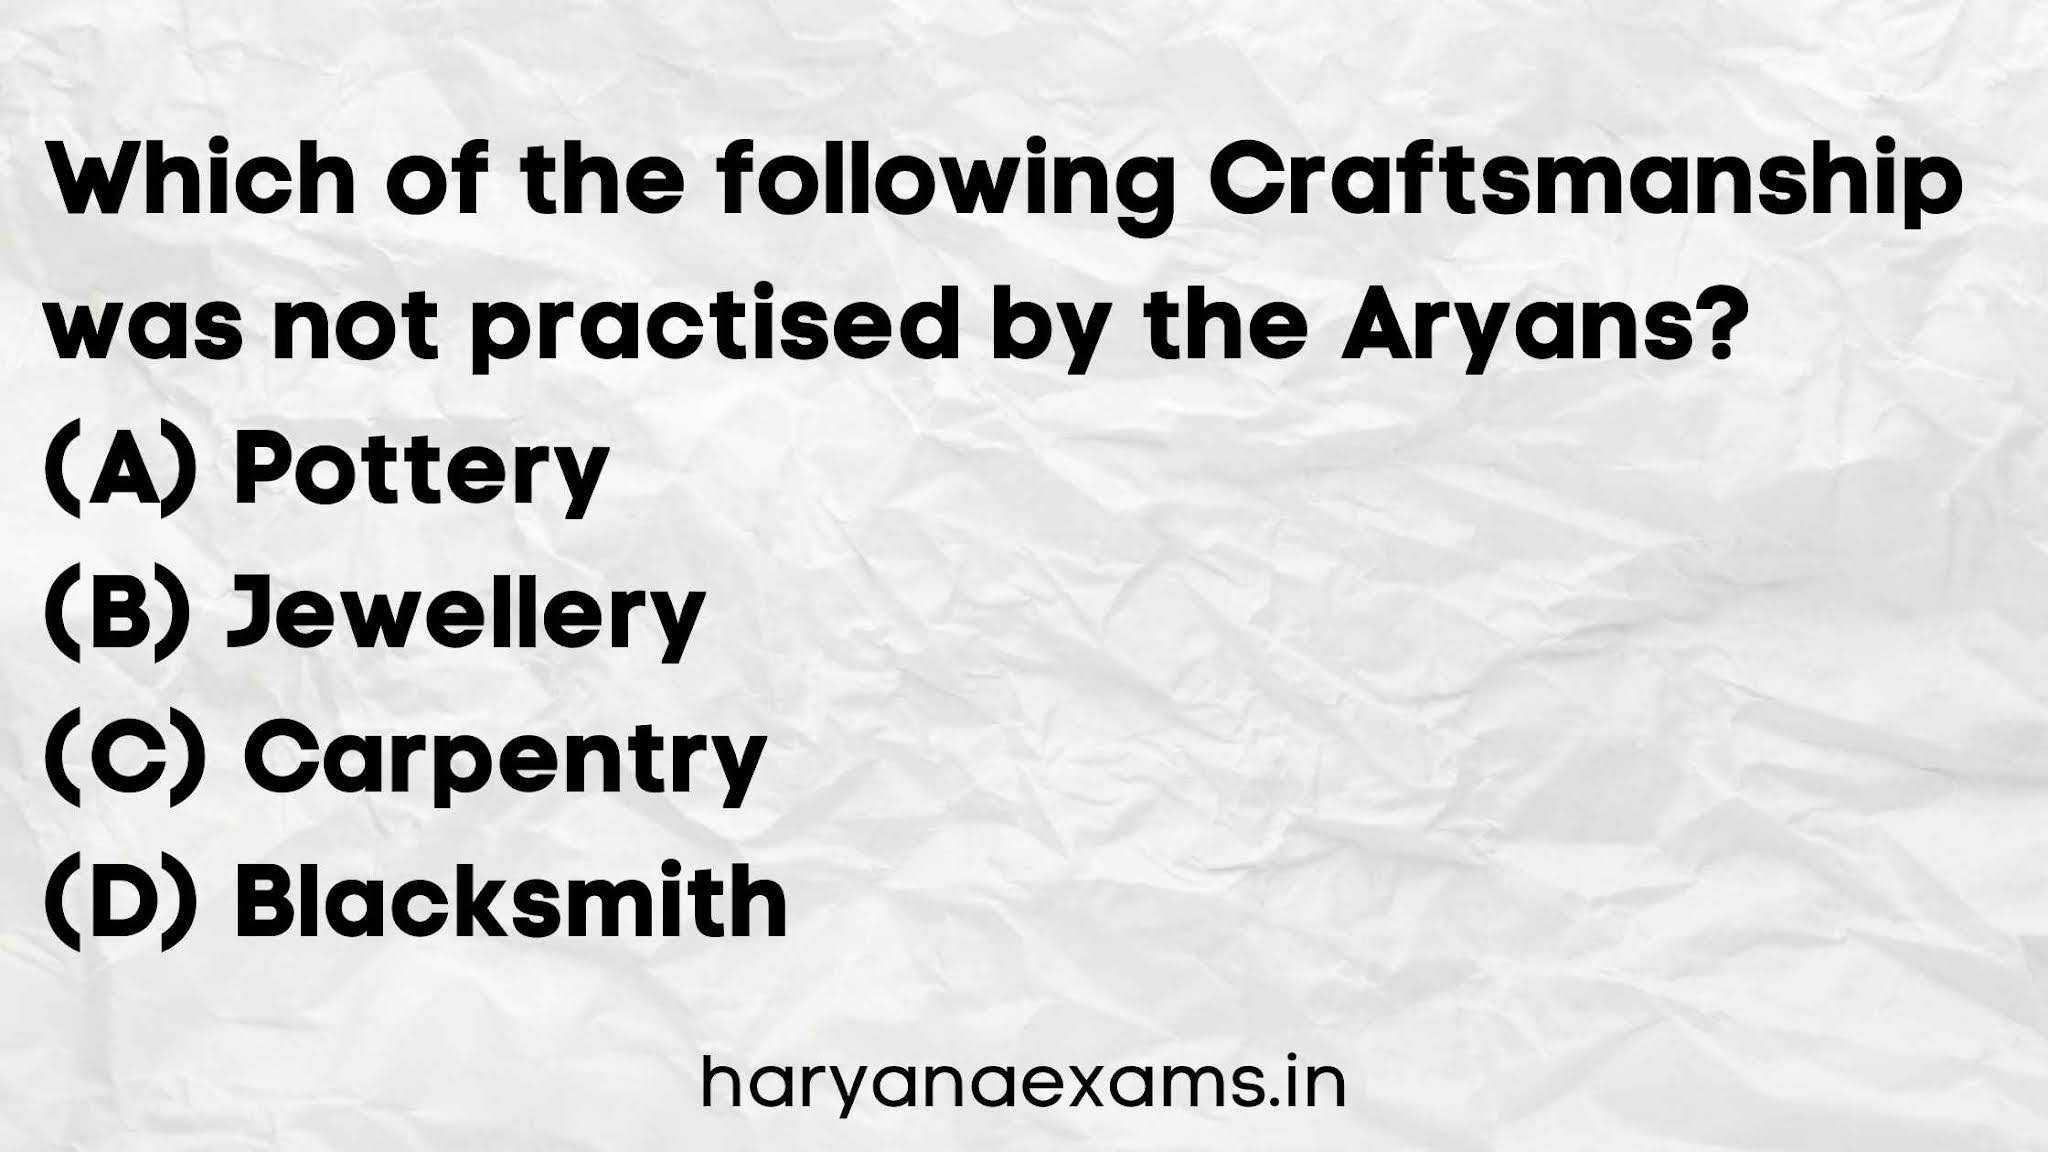 Which of the following Craftsmanship was not practised by the Aryans?   (A) Pottery   (B) Jewellery   (C) Carpentry   (D) Blacksmith